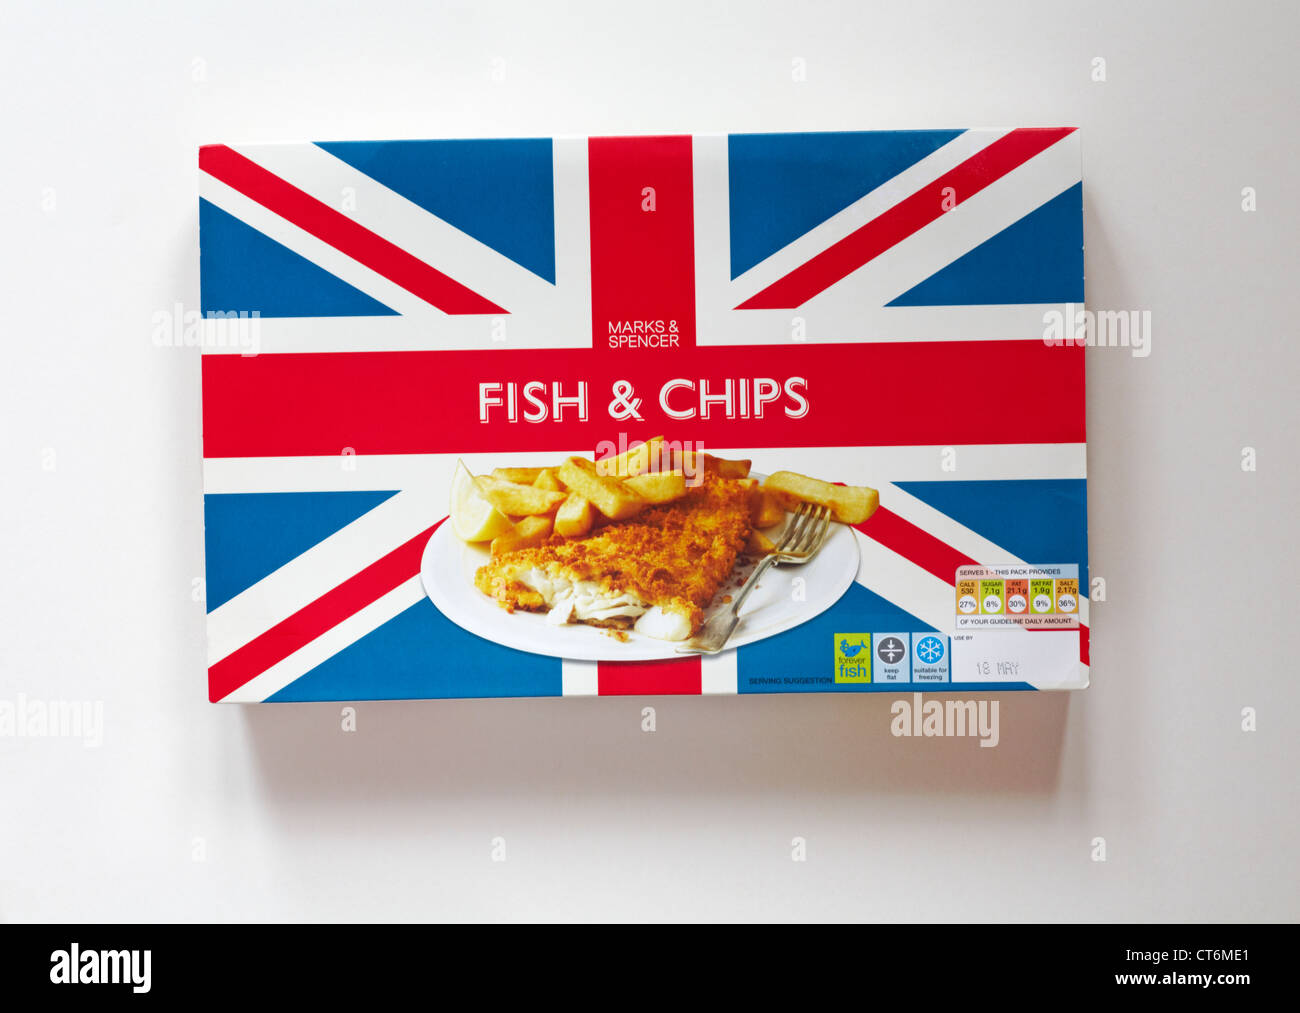 Pack of marks spencer fish chips with union jack for Jack in the box fish and chips